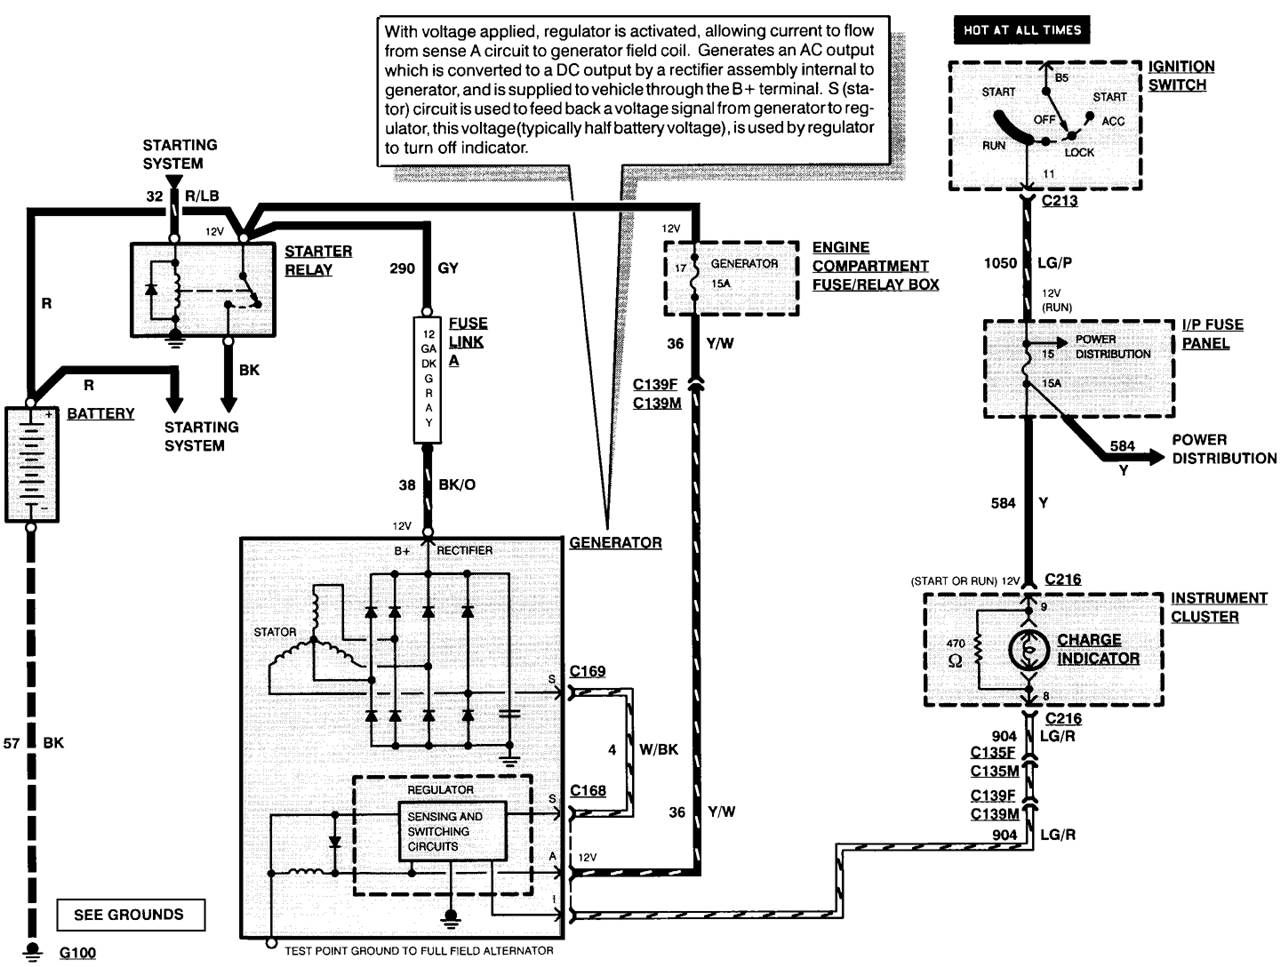 ldv alternator wiring diagram ldv wiring diagrams online wiring diagram of alternator wiring wiring diagrams online